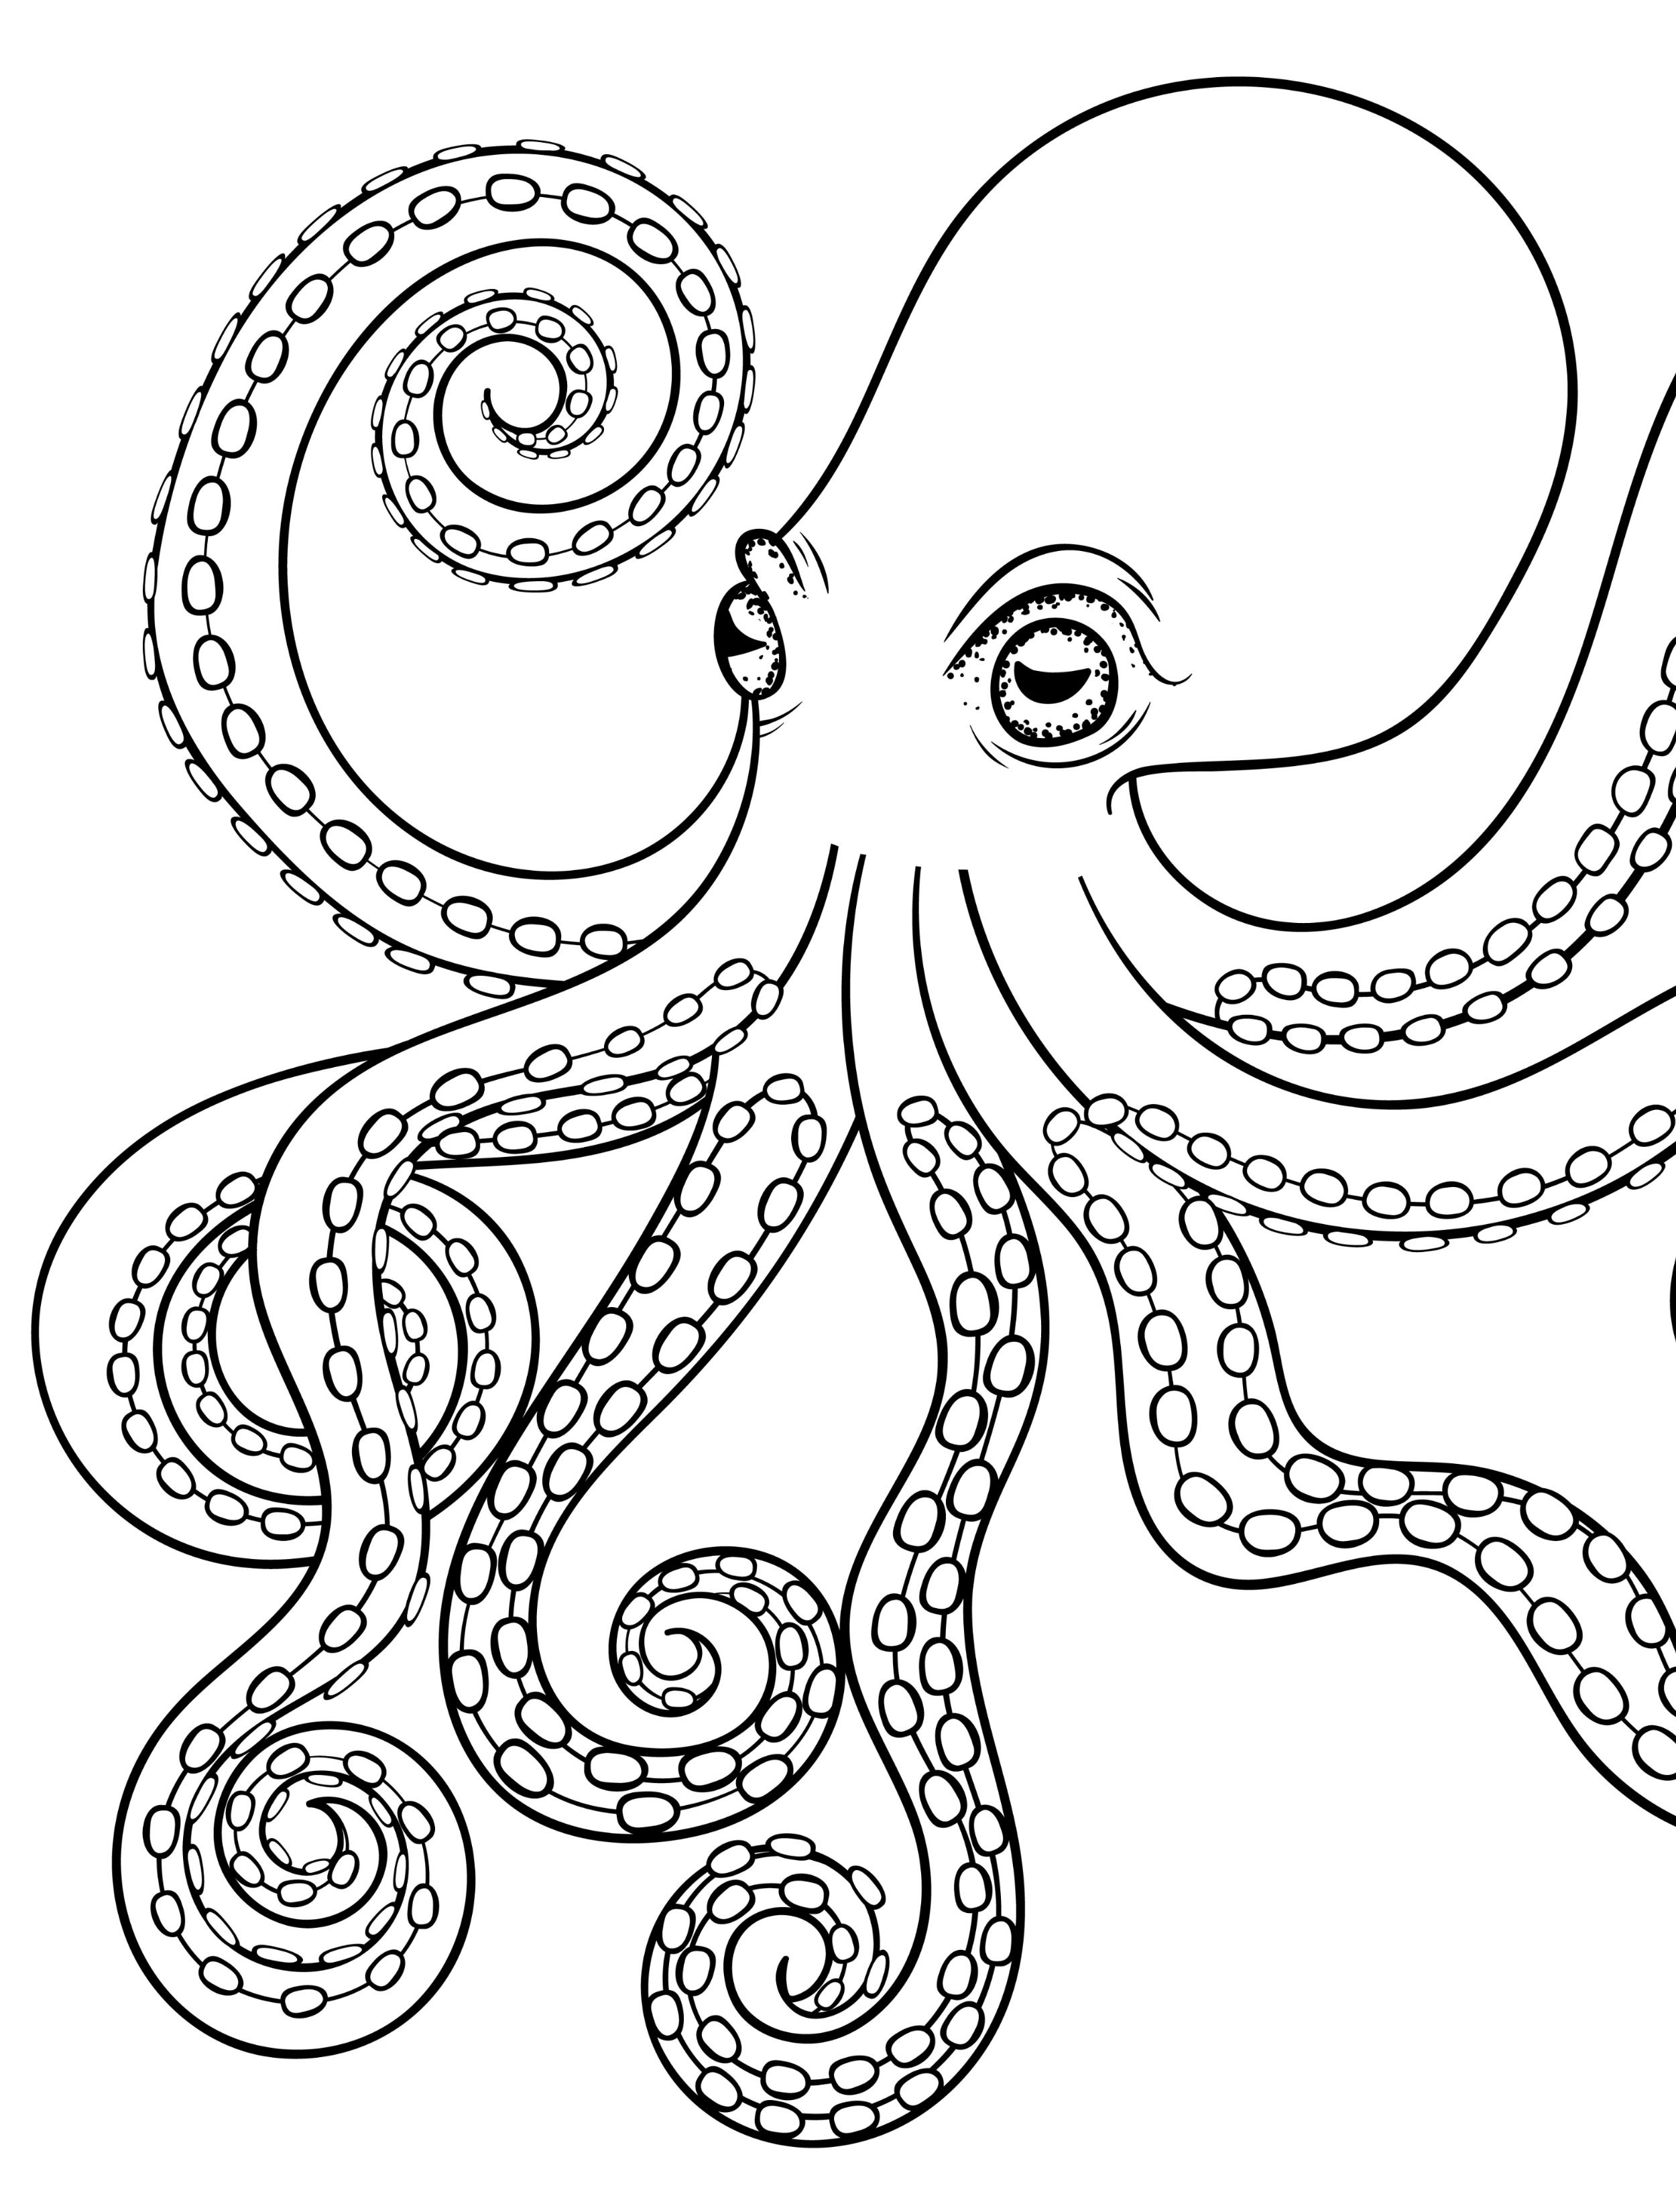 octopus pictures for coloring pin on art ideas coloring octopus for pictures